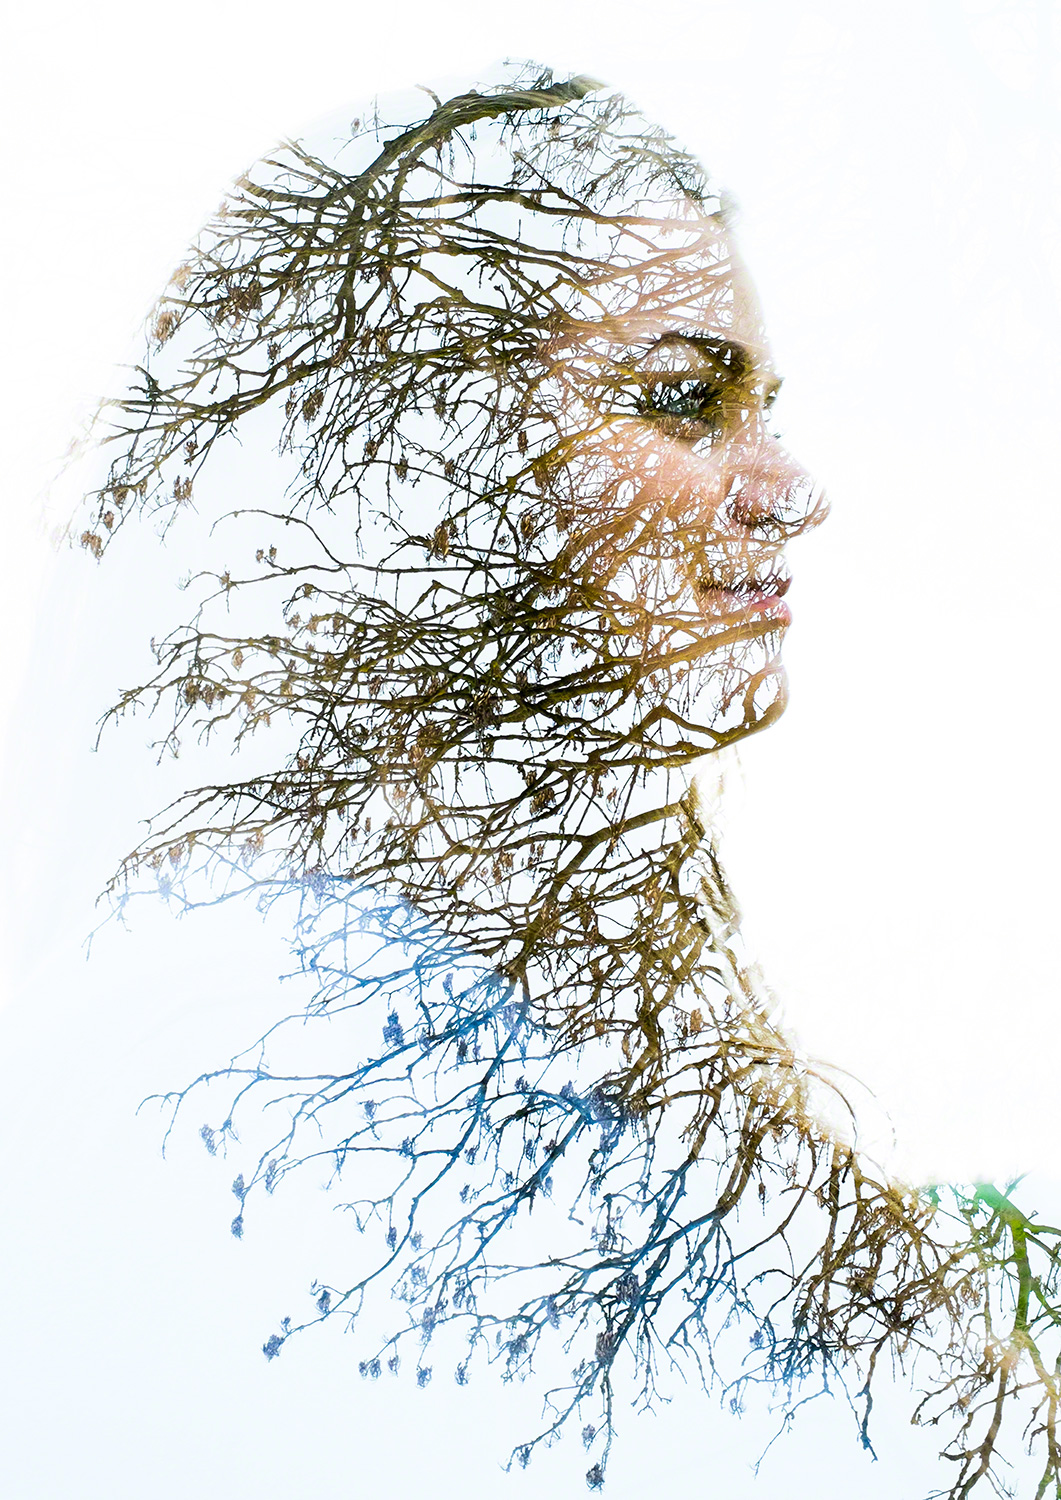 This is one of a series of double exposure images that I created as part of a Fine Art project for my degree.